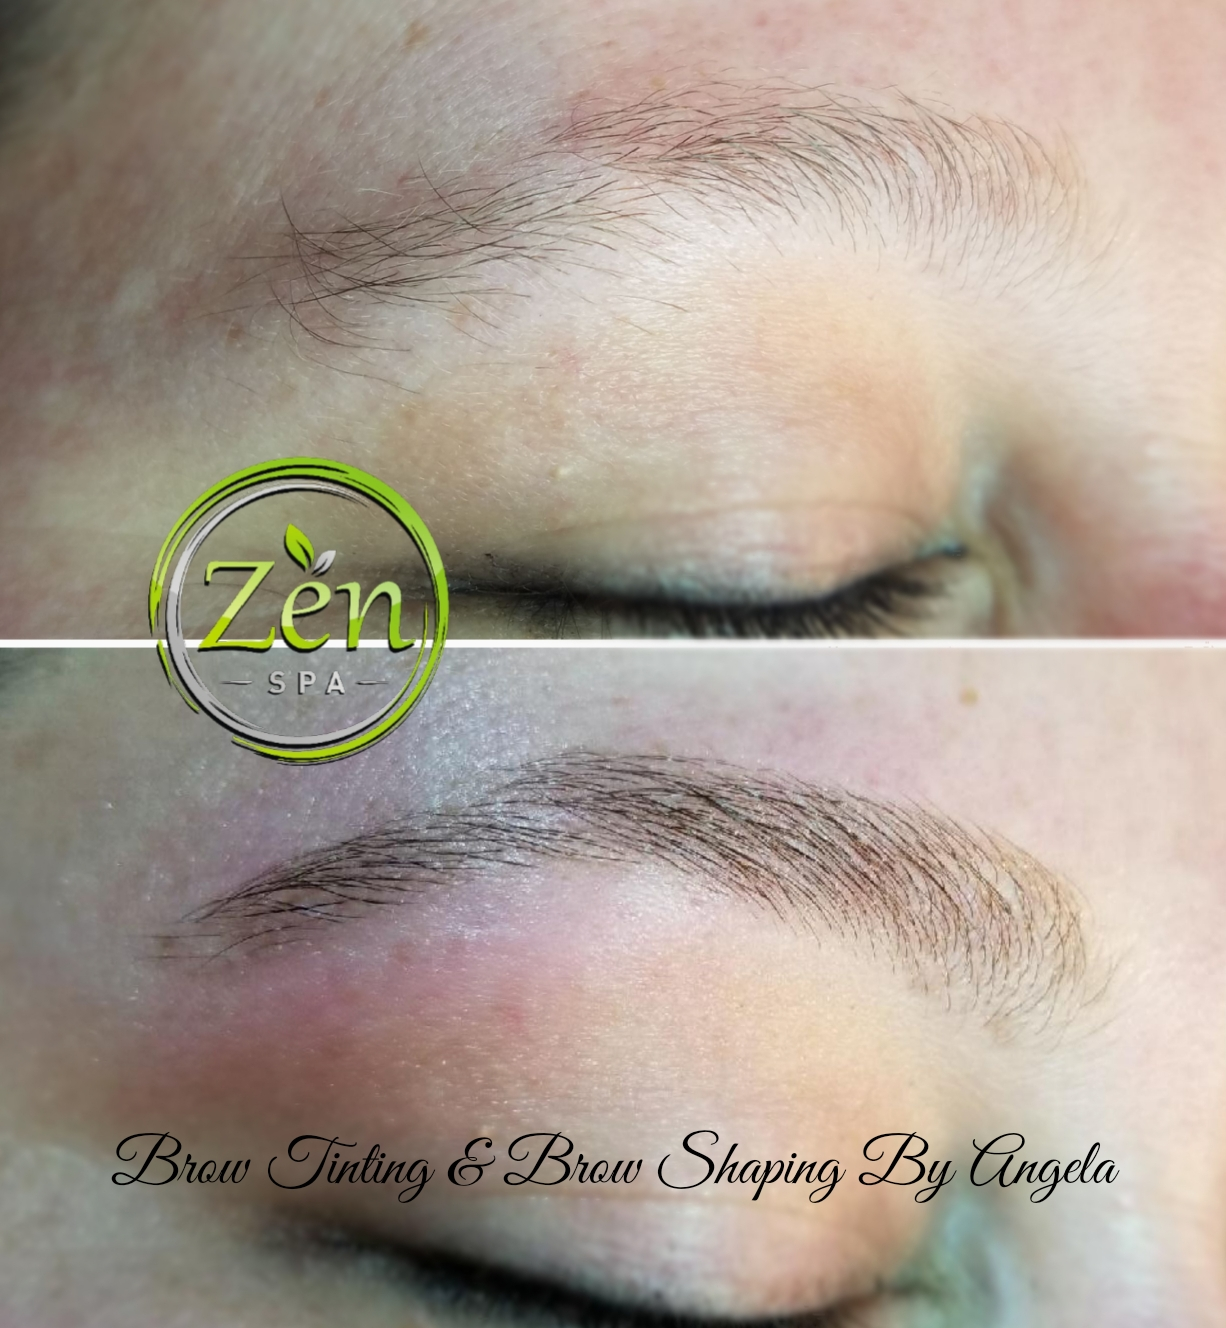 Brow Tinting & Shaping